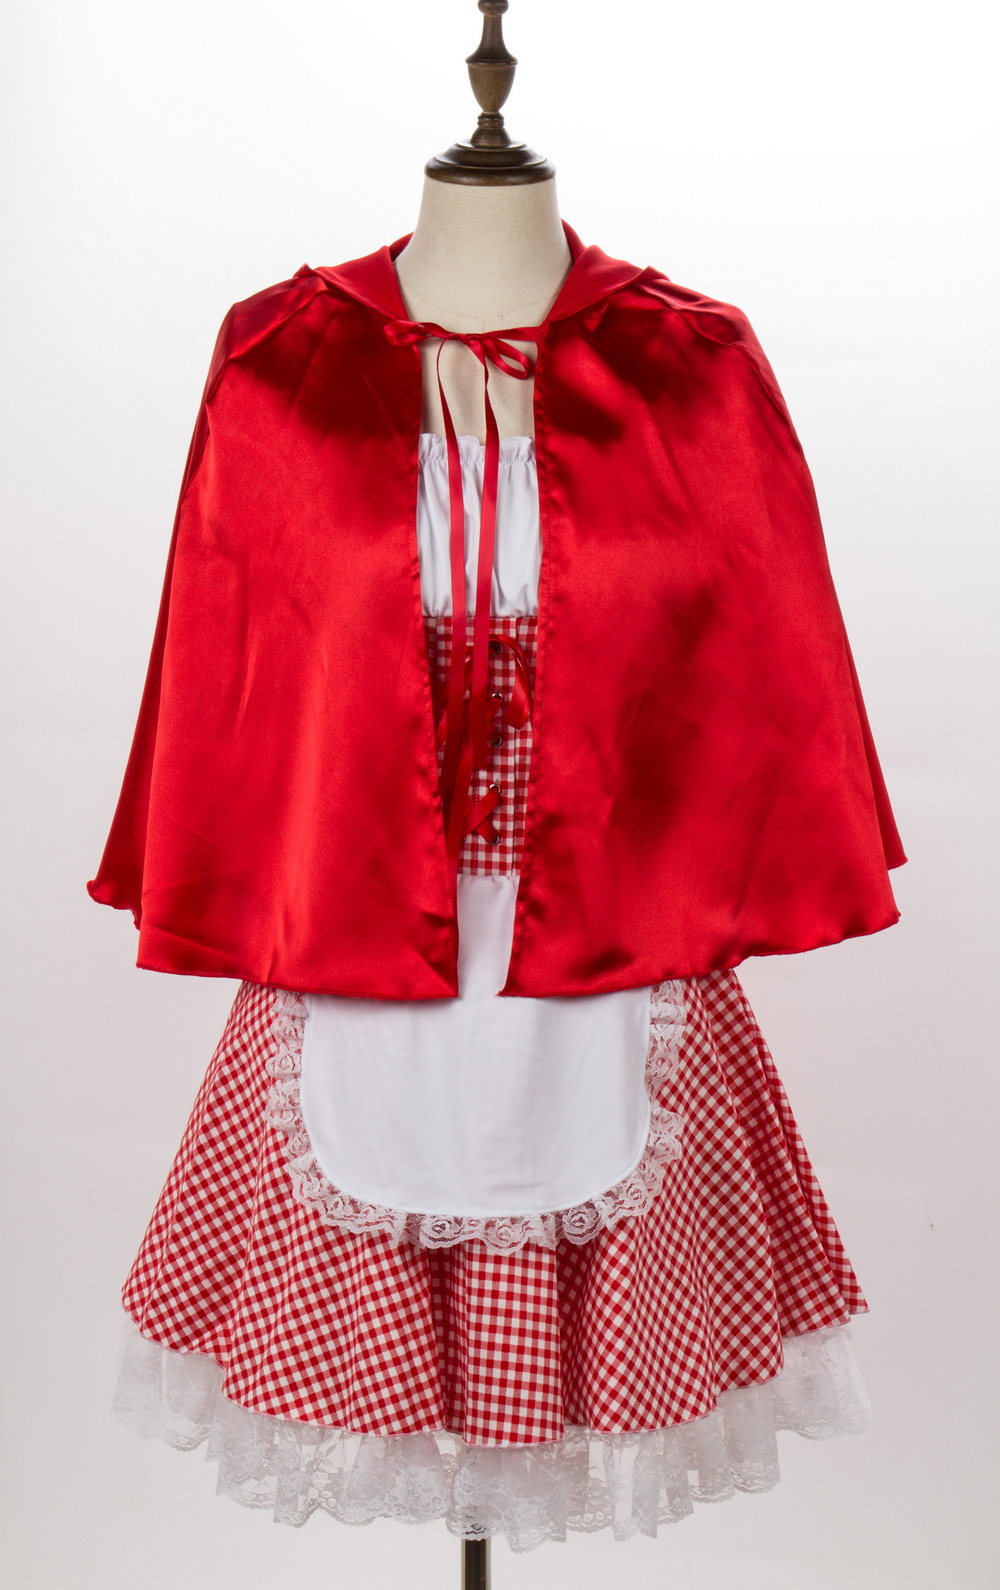 Women Copaly Dress Suit Plaid with Lace Decoration for Halloween Beer Festival  red_XL